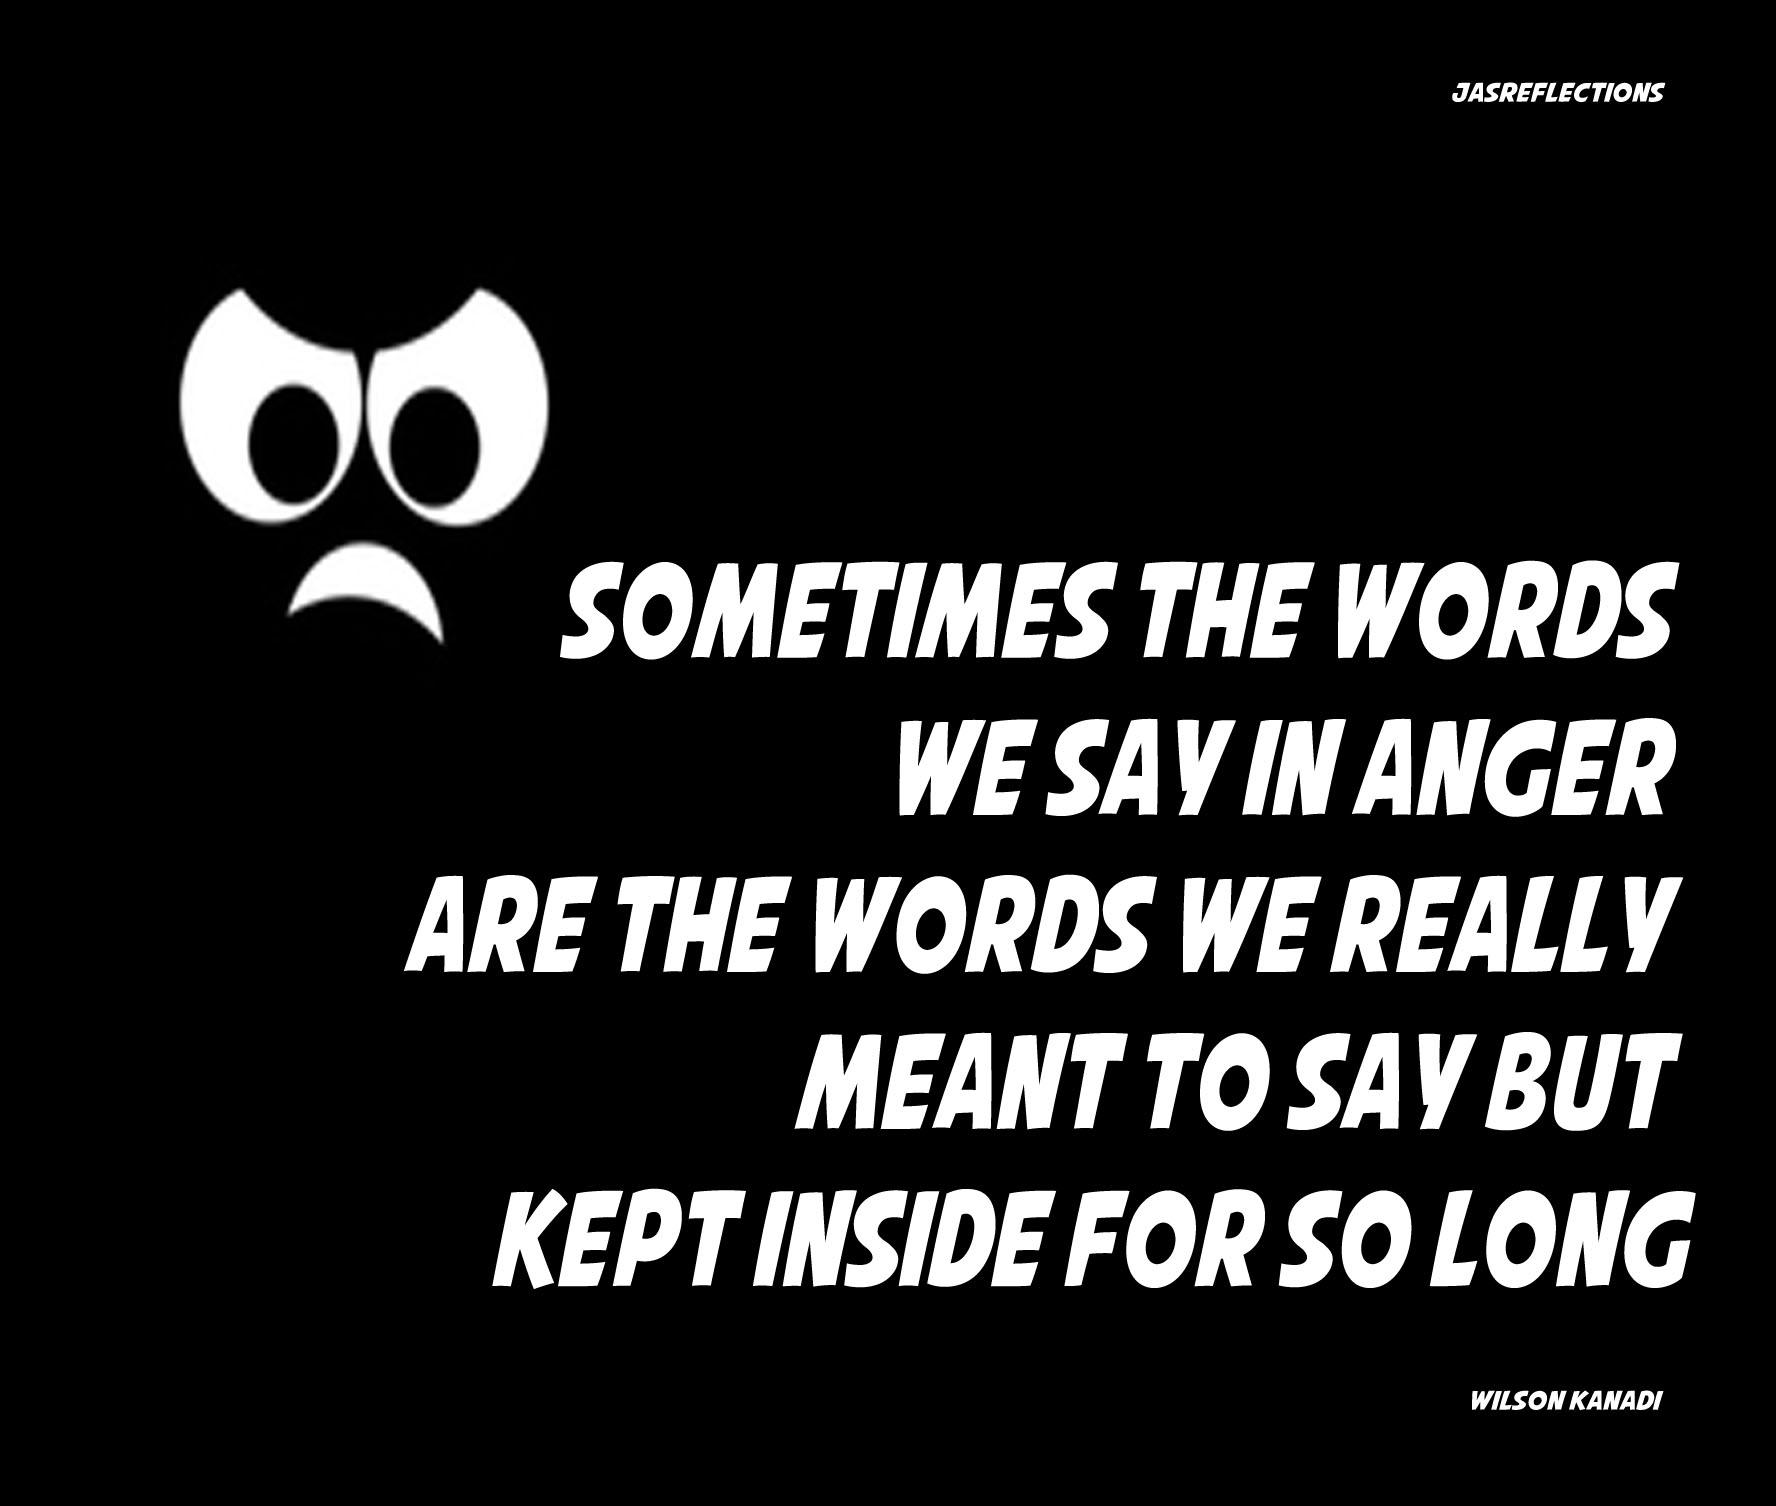 Quotes About Bitterness: Funny Anger Quotes And Sayings. QuotesGram